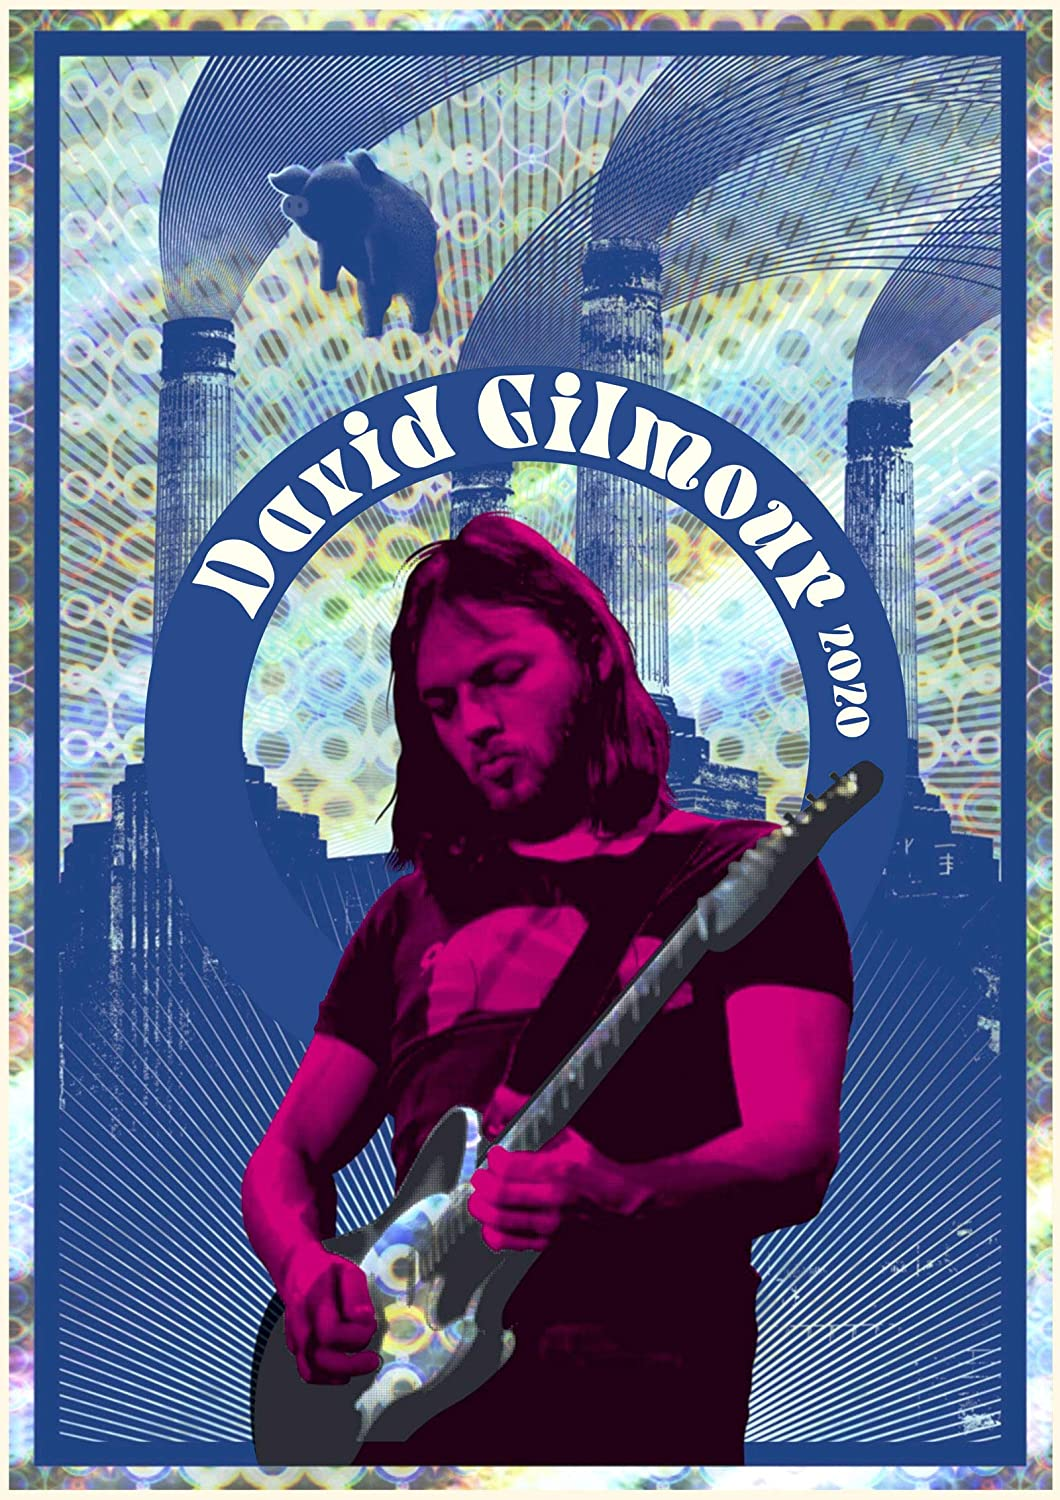 David Gilmour Tour 2020.Wall Calendar 2020 12 Pages 8 X11 David Gilmour Pink Floyd Music Vintage Photo Poster Magazine Cover